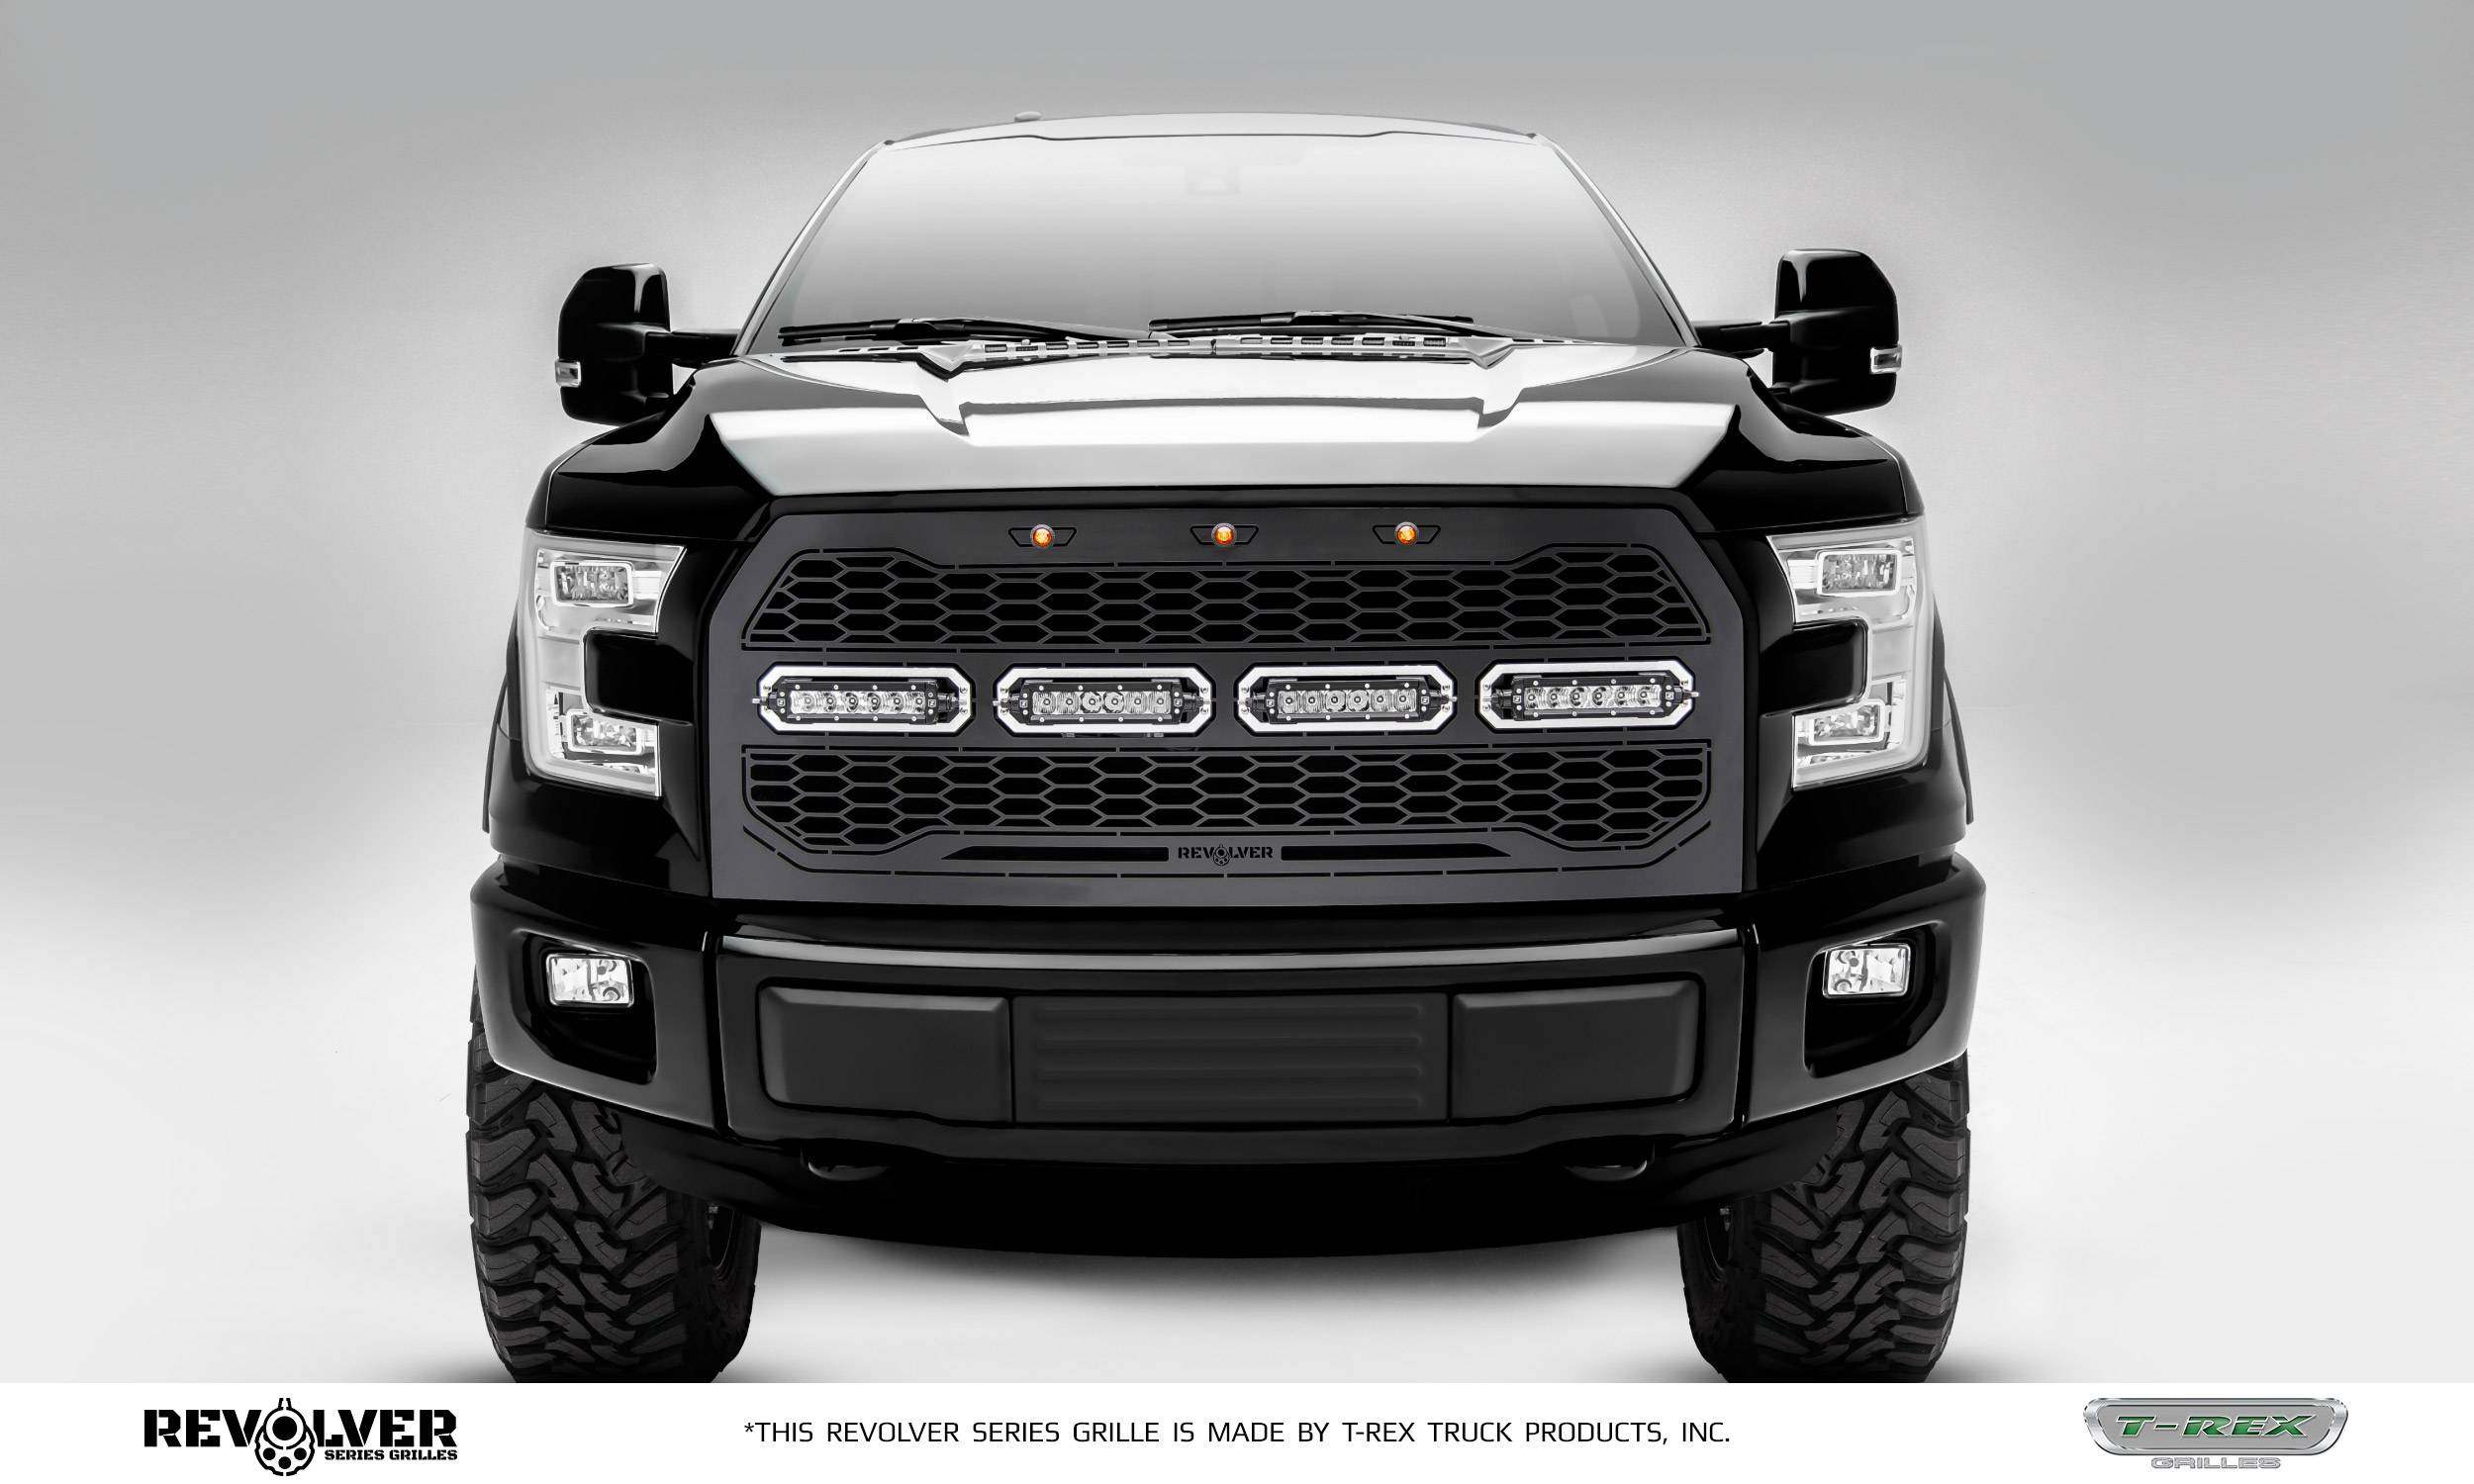 T rex ford f 150 revolver series wo forward facing camera t rex ford f 150 revolver series wo forward facing camera main replacement grille w 4 6 slim line single row led light bar part 6515731 aloadofball Choice Image